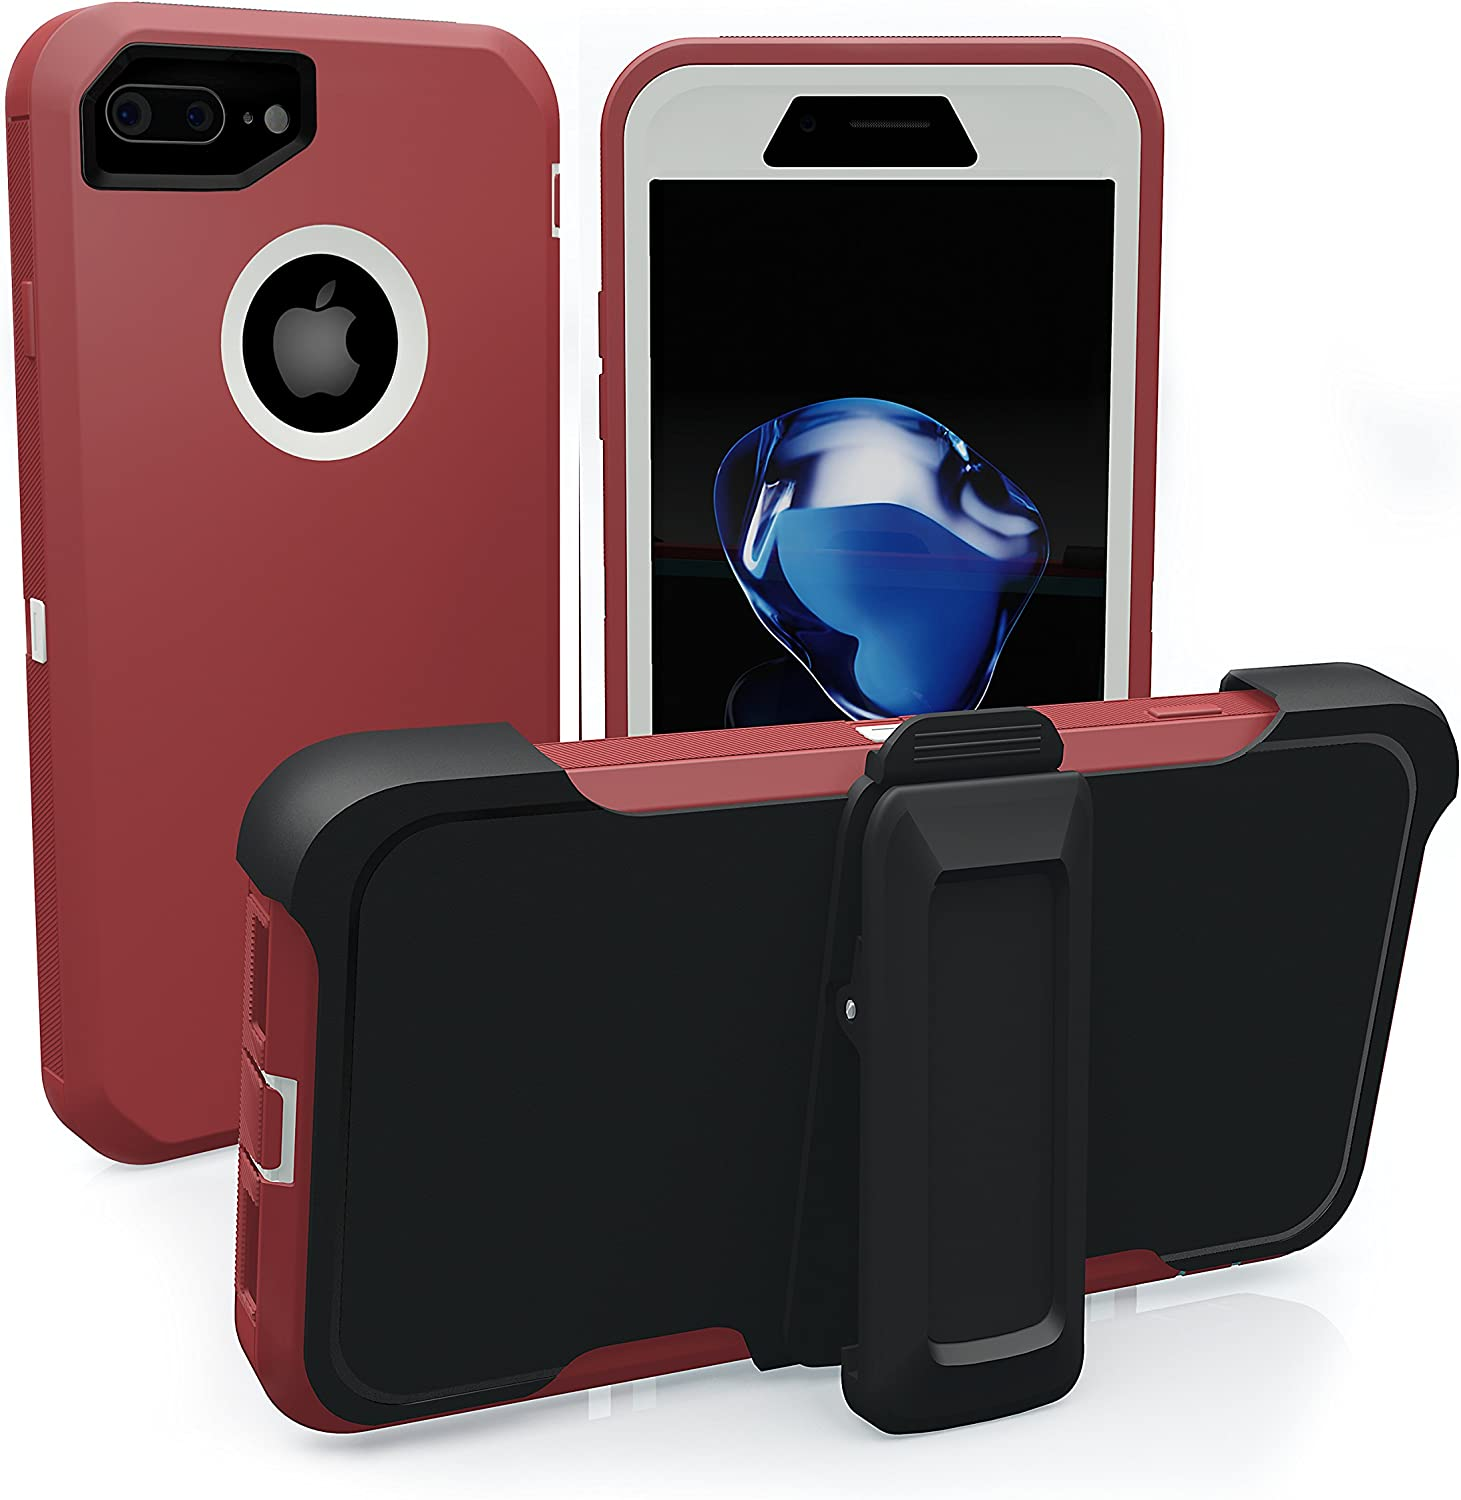 iPhone 7 Plus Case, iPhone 8 Plus Case, ToughBox [Armor Series] [Shock Proof] [Red | White] for Apple iPhone 7/8 Plus Case [Screen Protector] [Holster & Belt Clip] [Fits OtterBox Defender Clip]